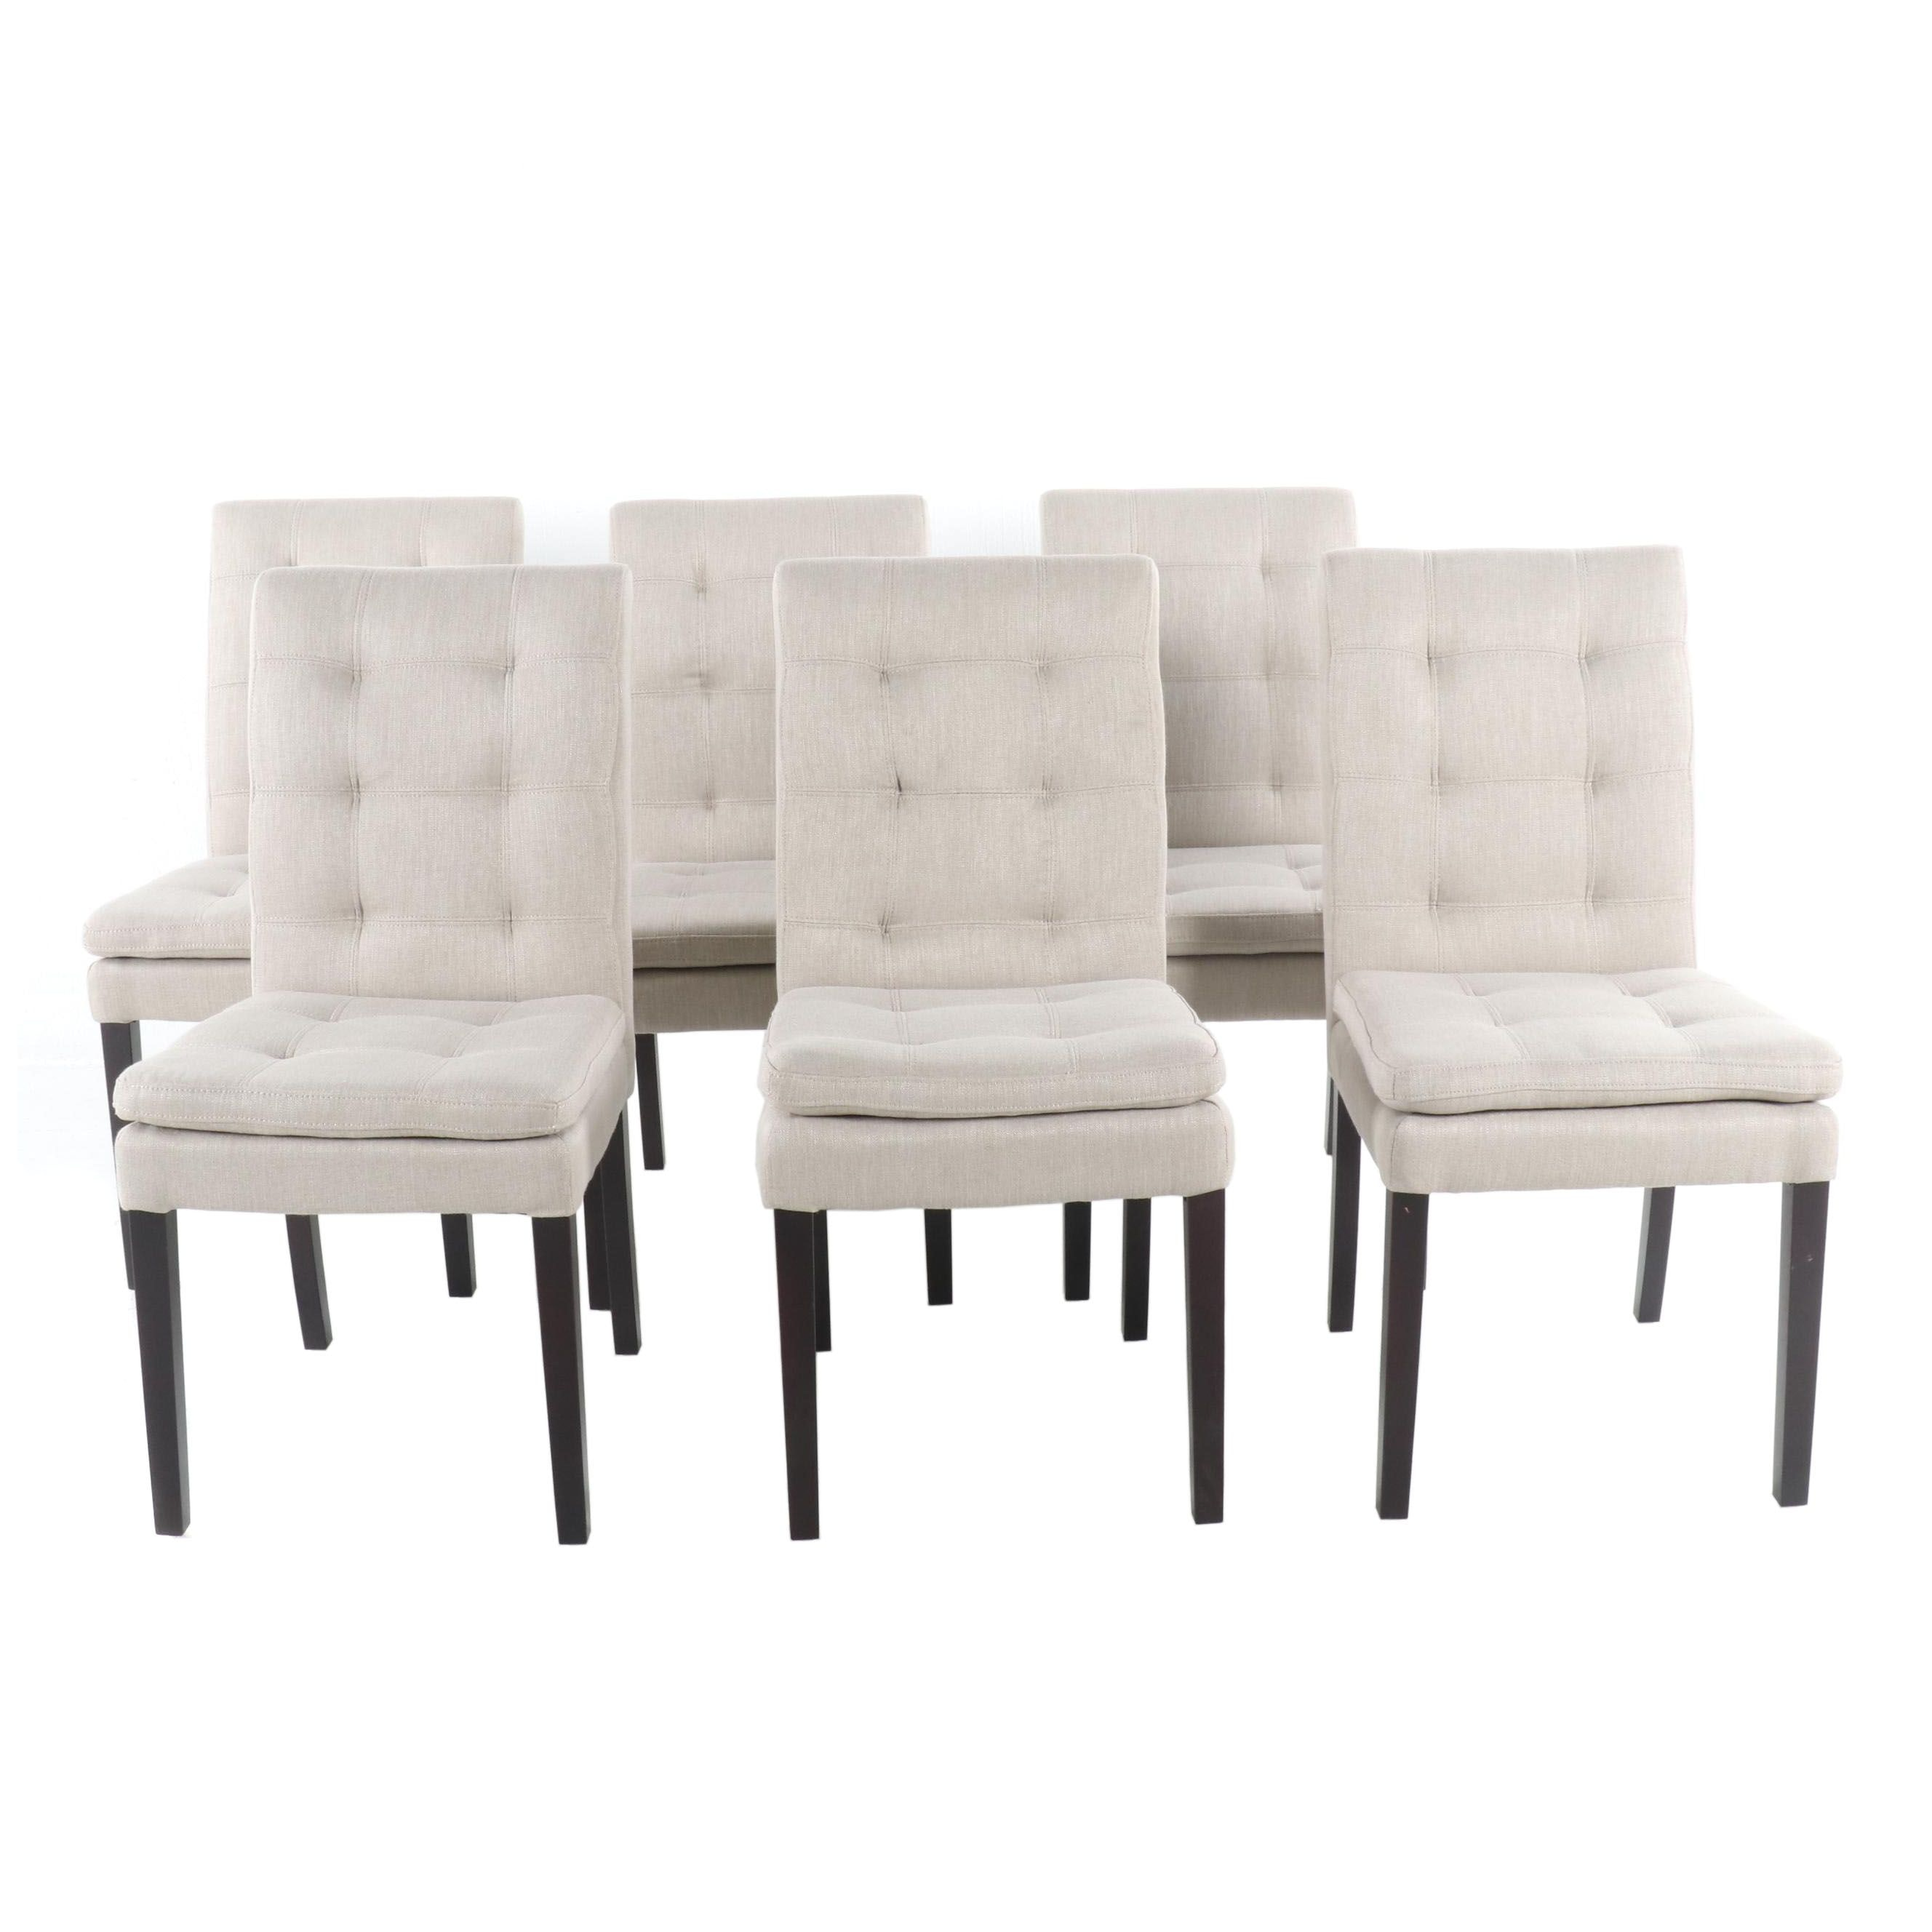 Contemporary Linen Style Side Chairs, 21st Century